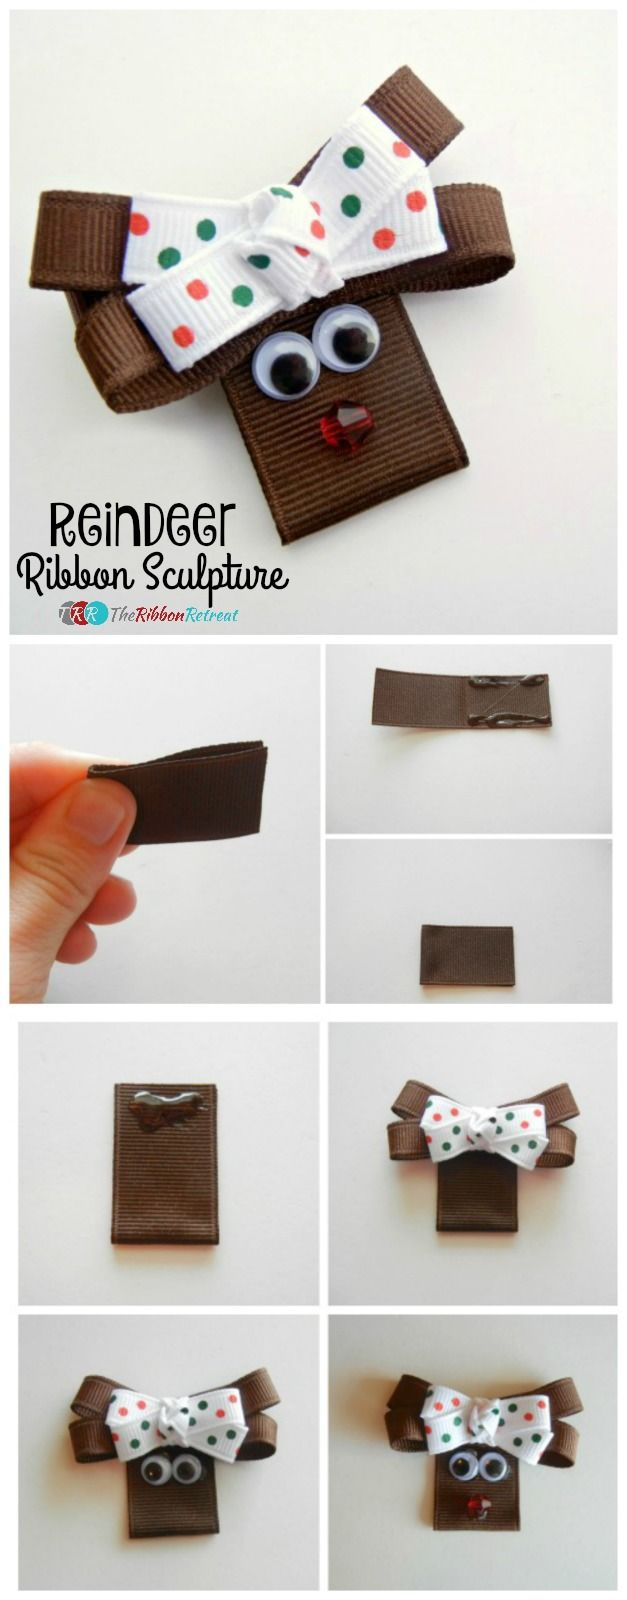 Reindeer Ribbon Sculpture - The Ribbon Retreat Blog